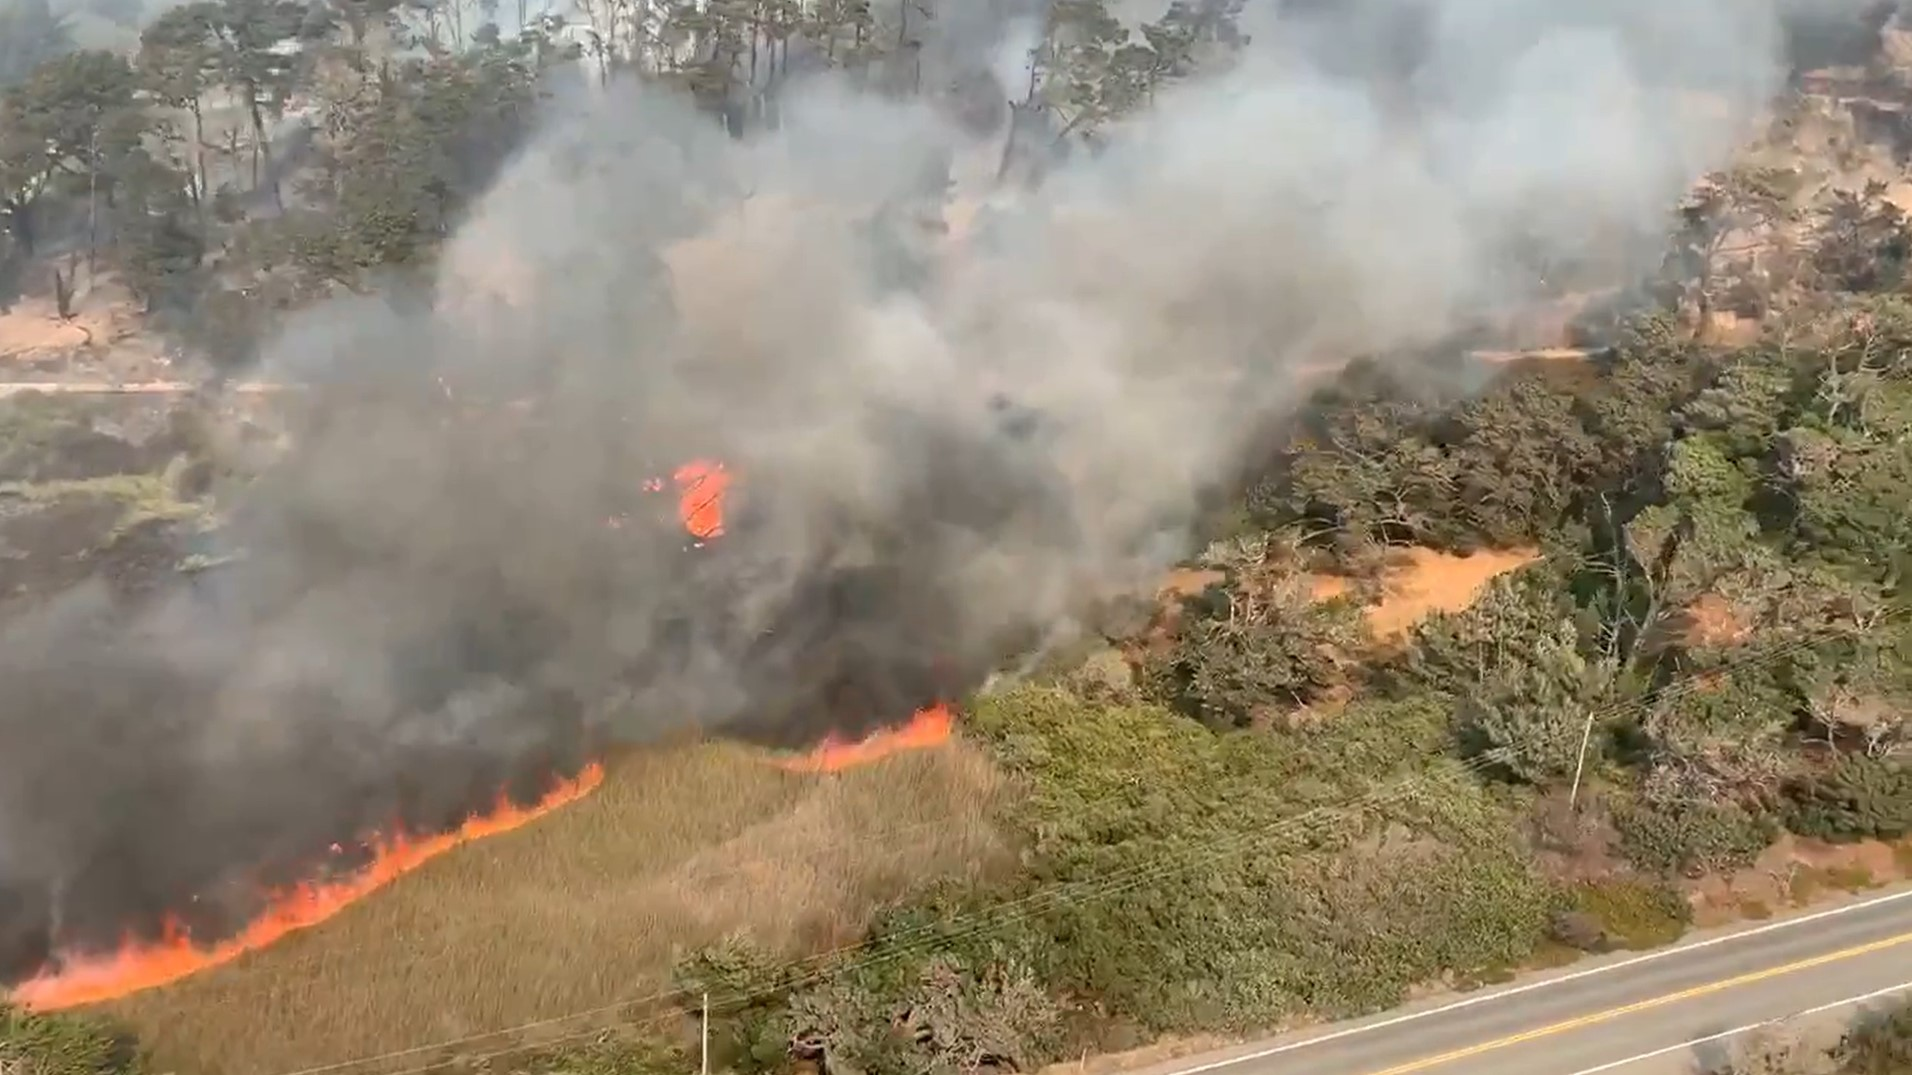 Wildfires Spread Rapidly, Near Homes In Cordoba